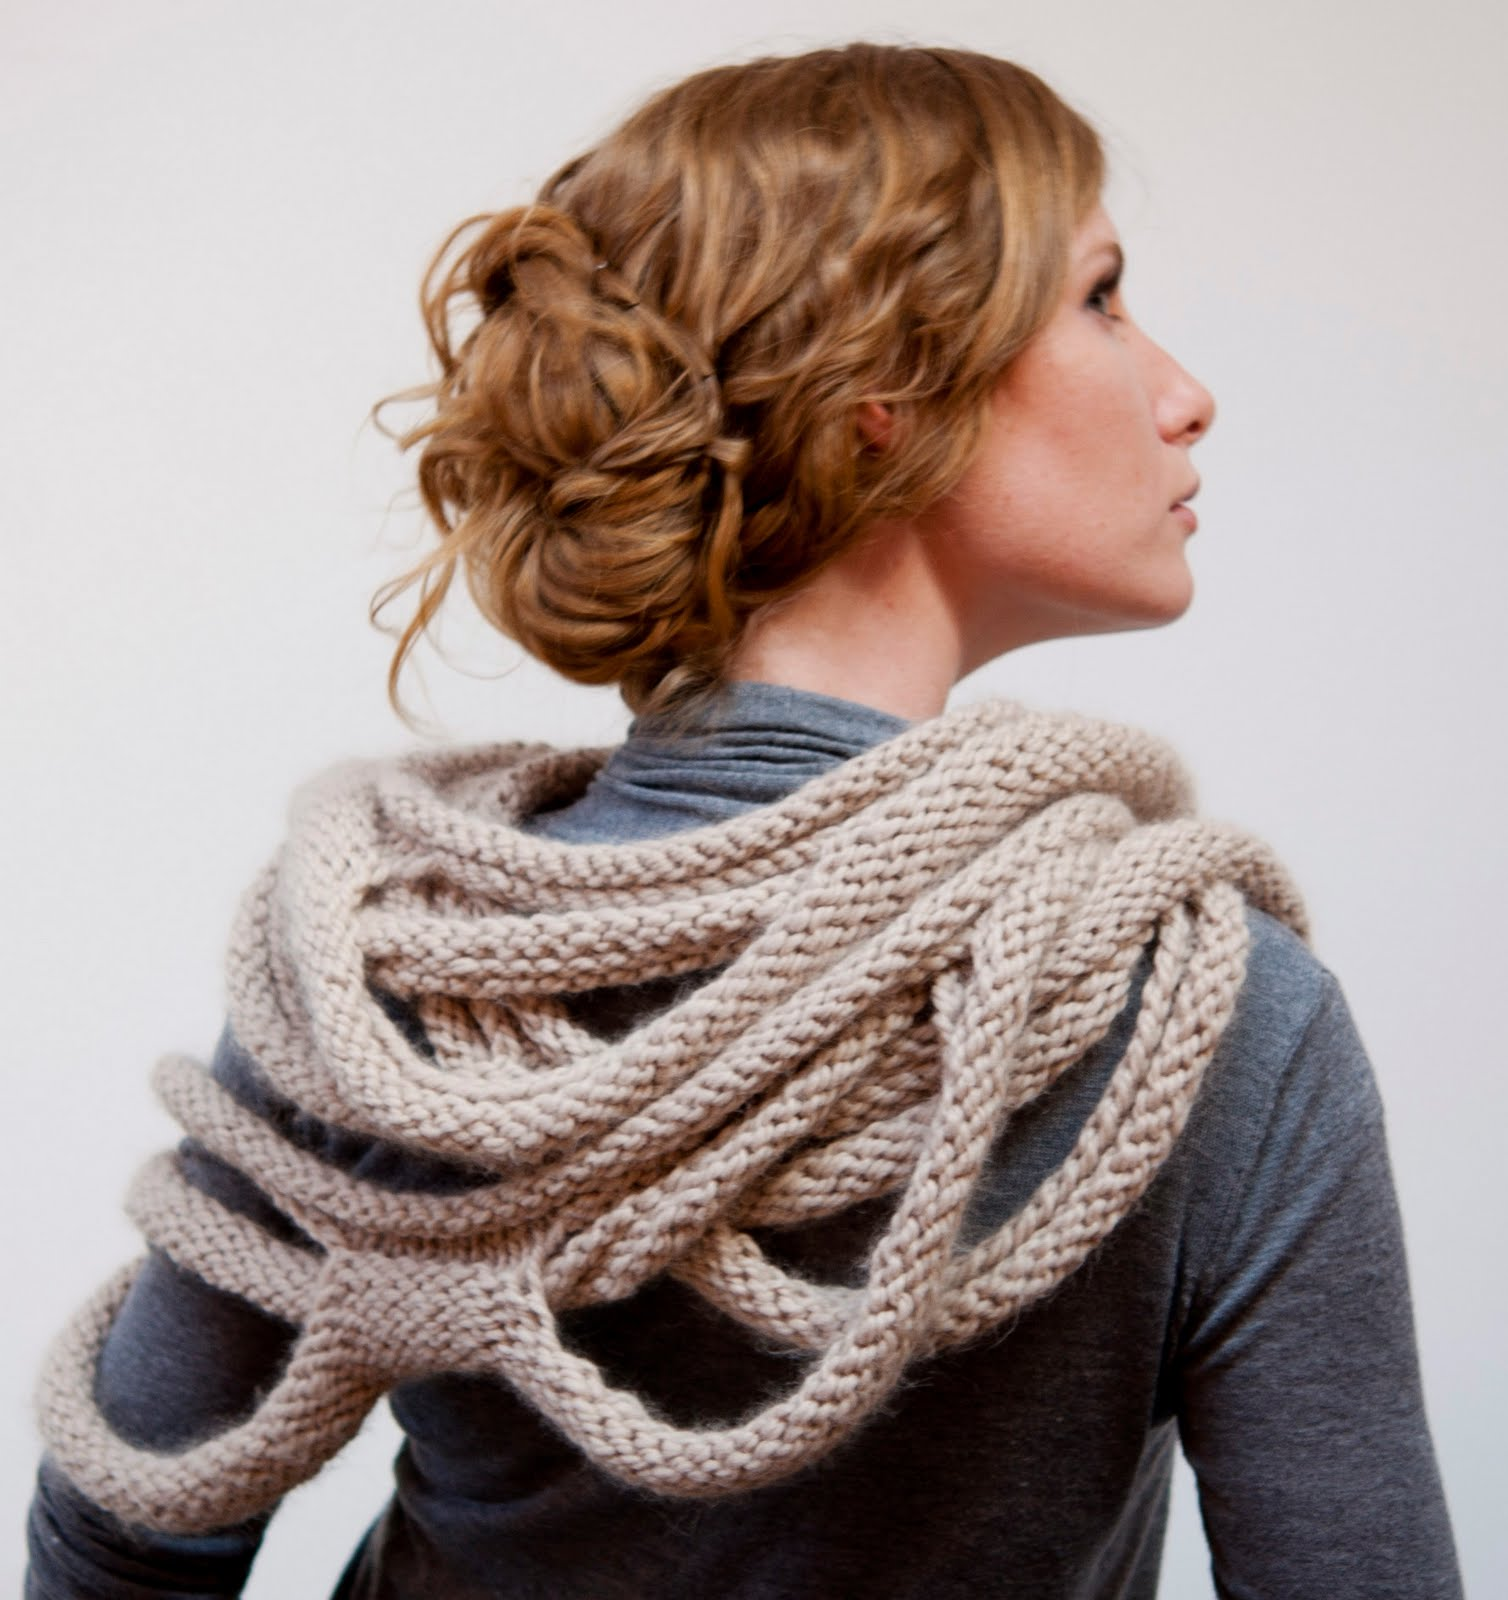 Knitting Patterns For Loop Scarves : Ruby Submarine: Medusa Loop Scarf Knitting Pattern